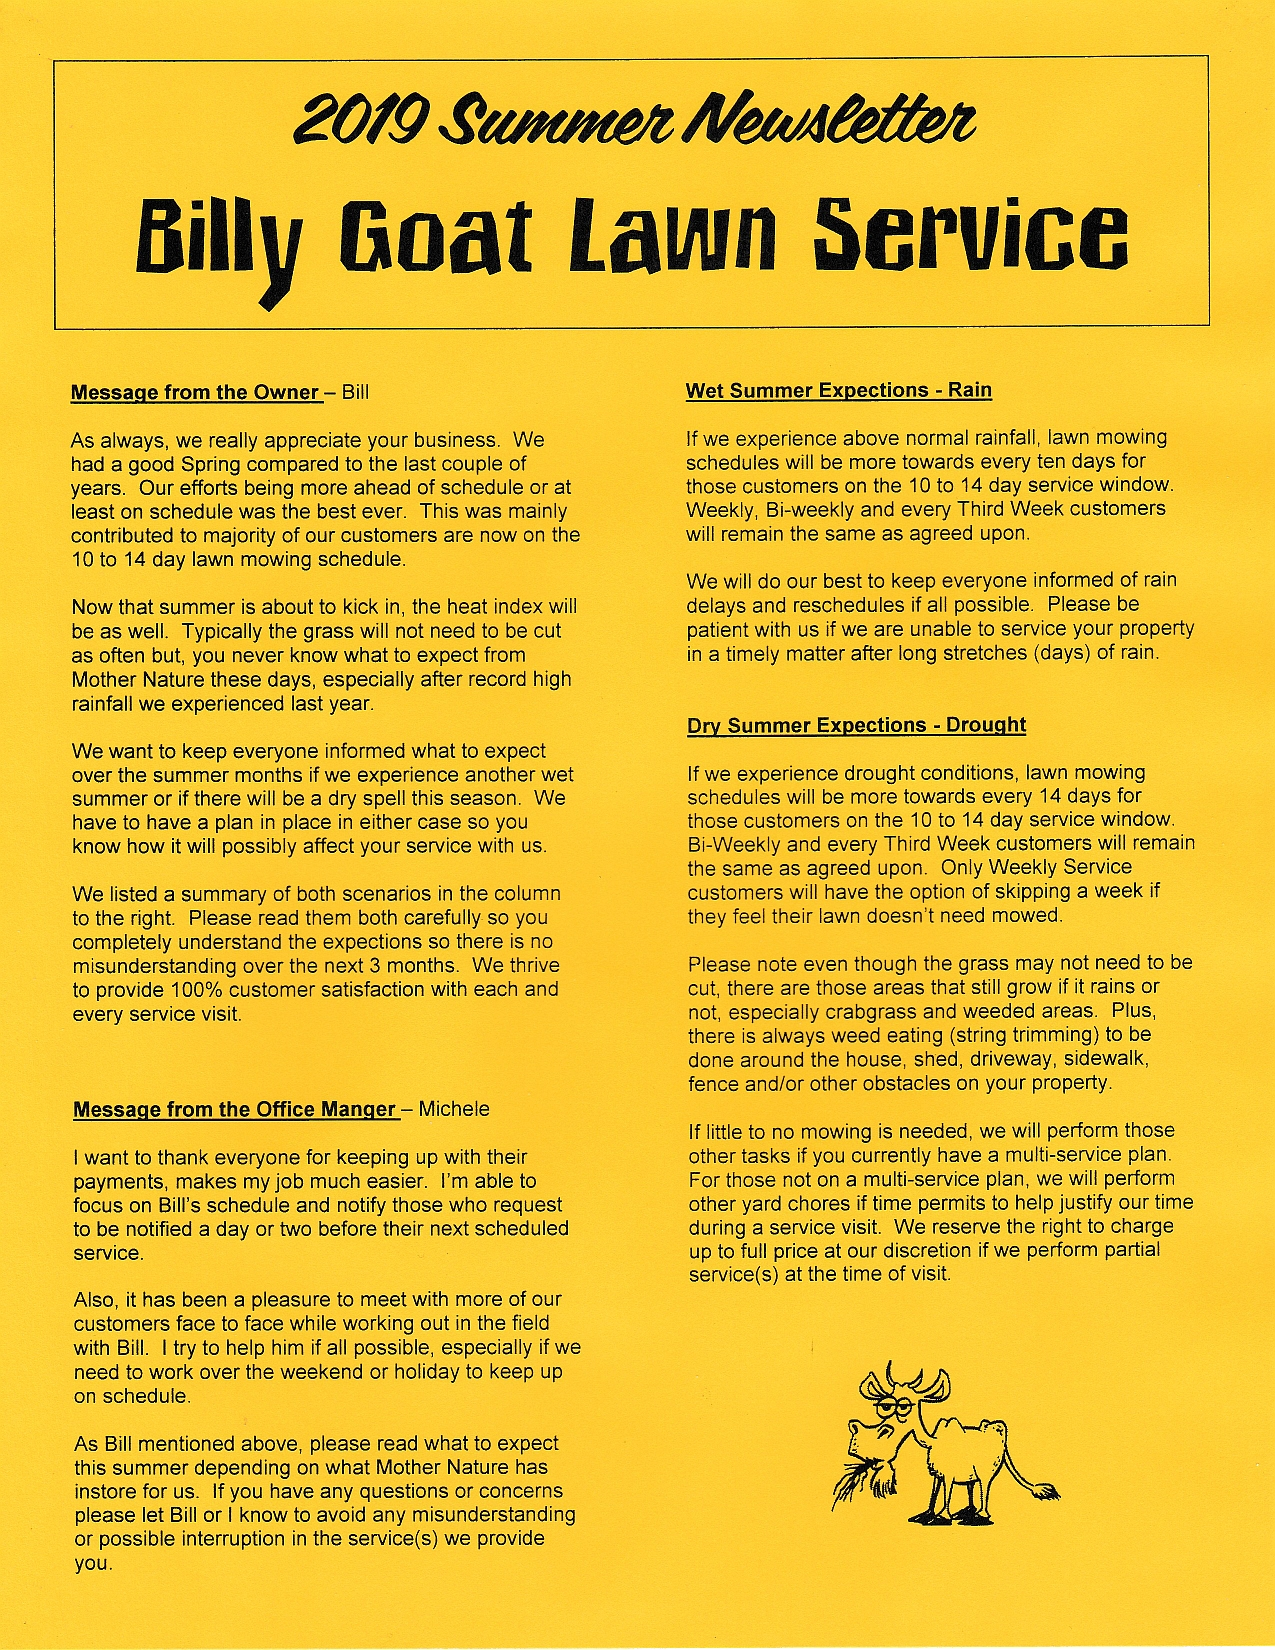 Billy Goat Lawn Service | Glen Burnie, Maryland | 410-975-8389